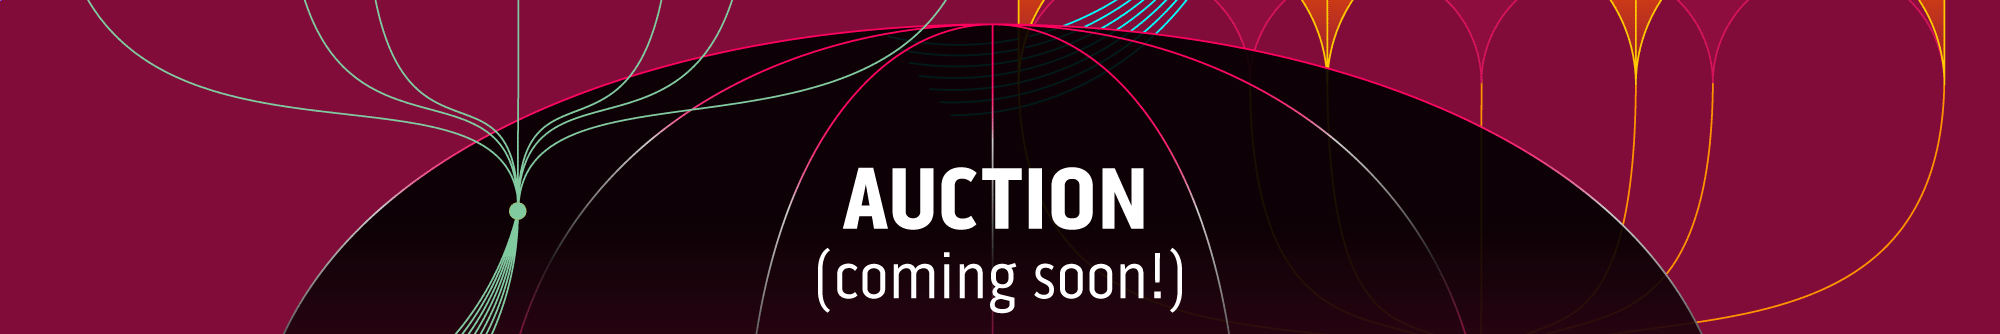 Auction (coming soon!)